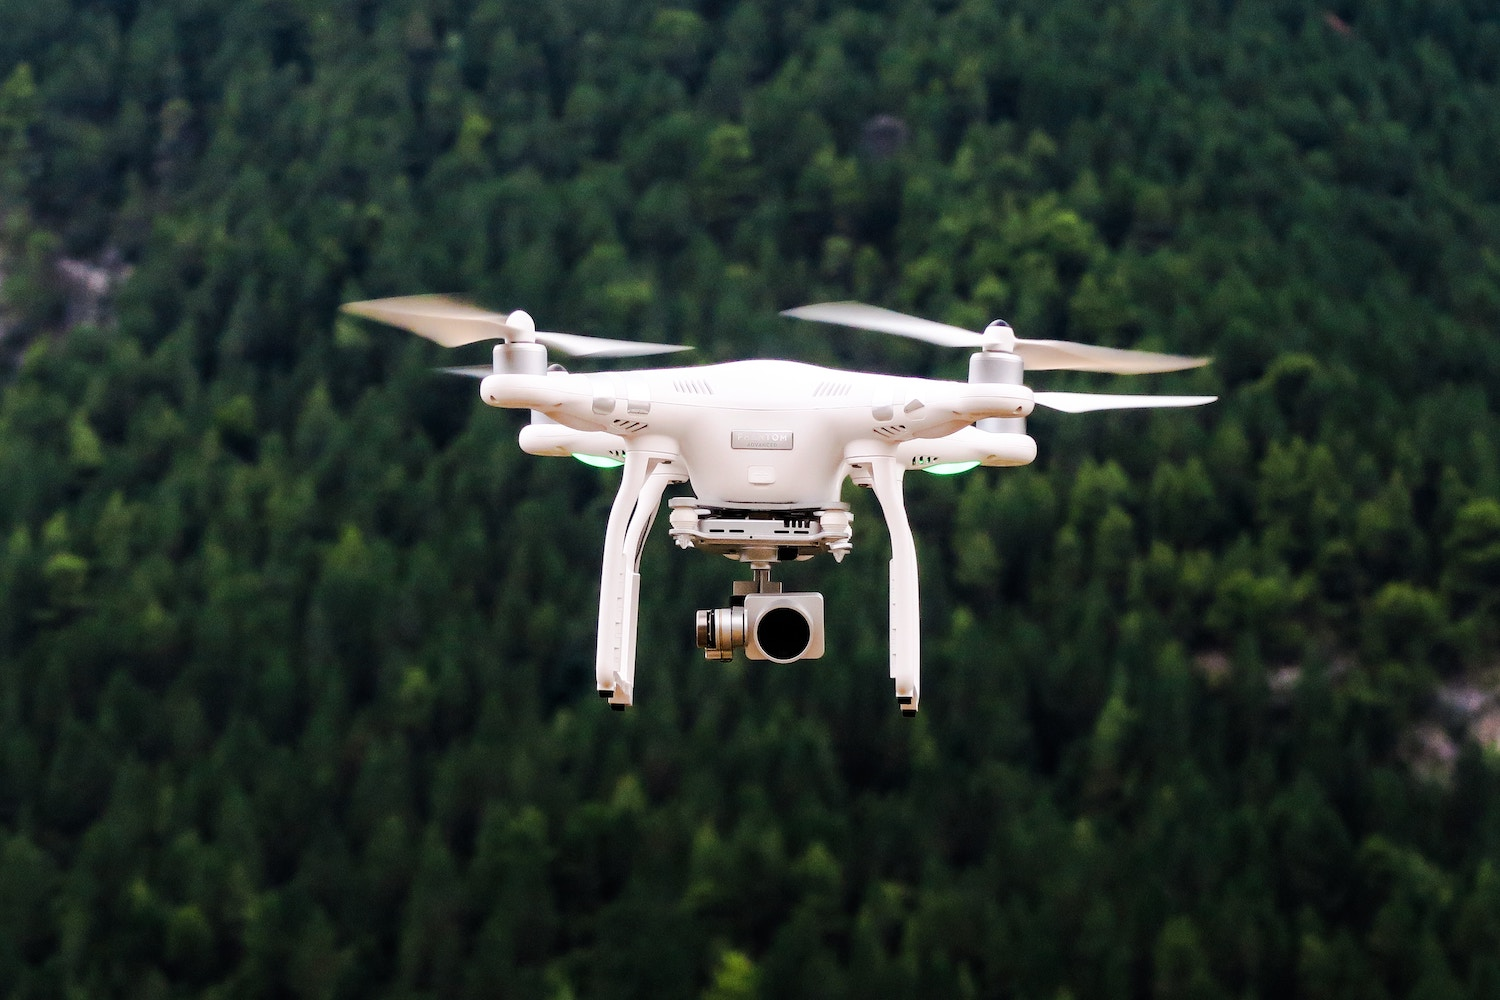 Drone Angles - $400Drones can give us some amazing shots from angles we wouldn't normally get. Plus, we love drones!